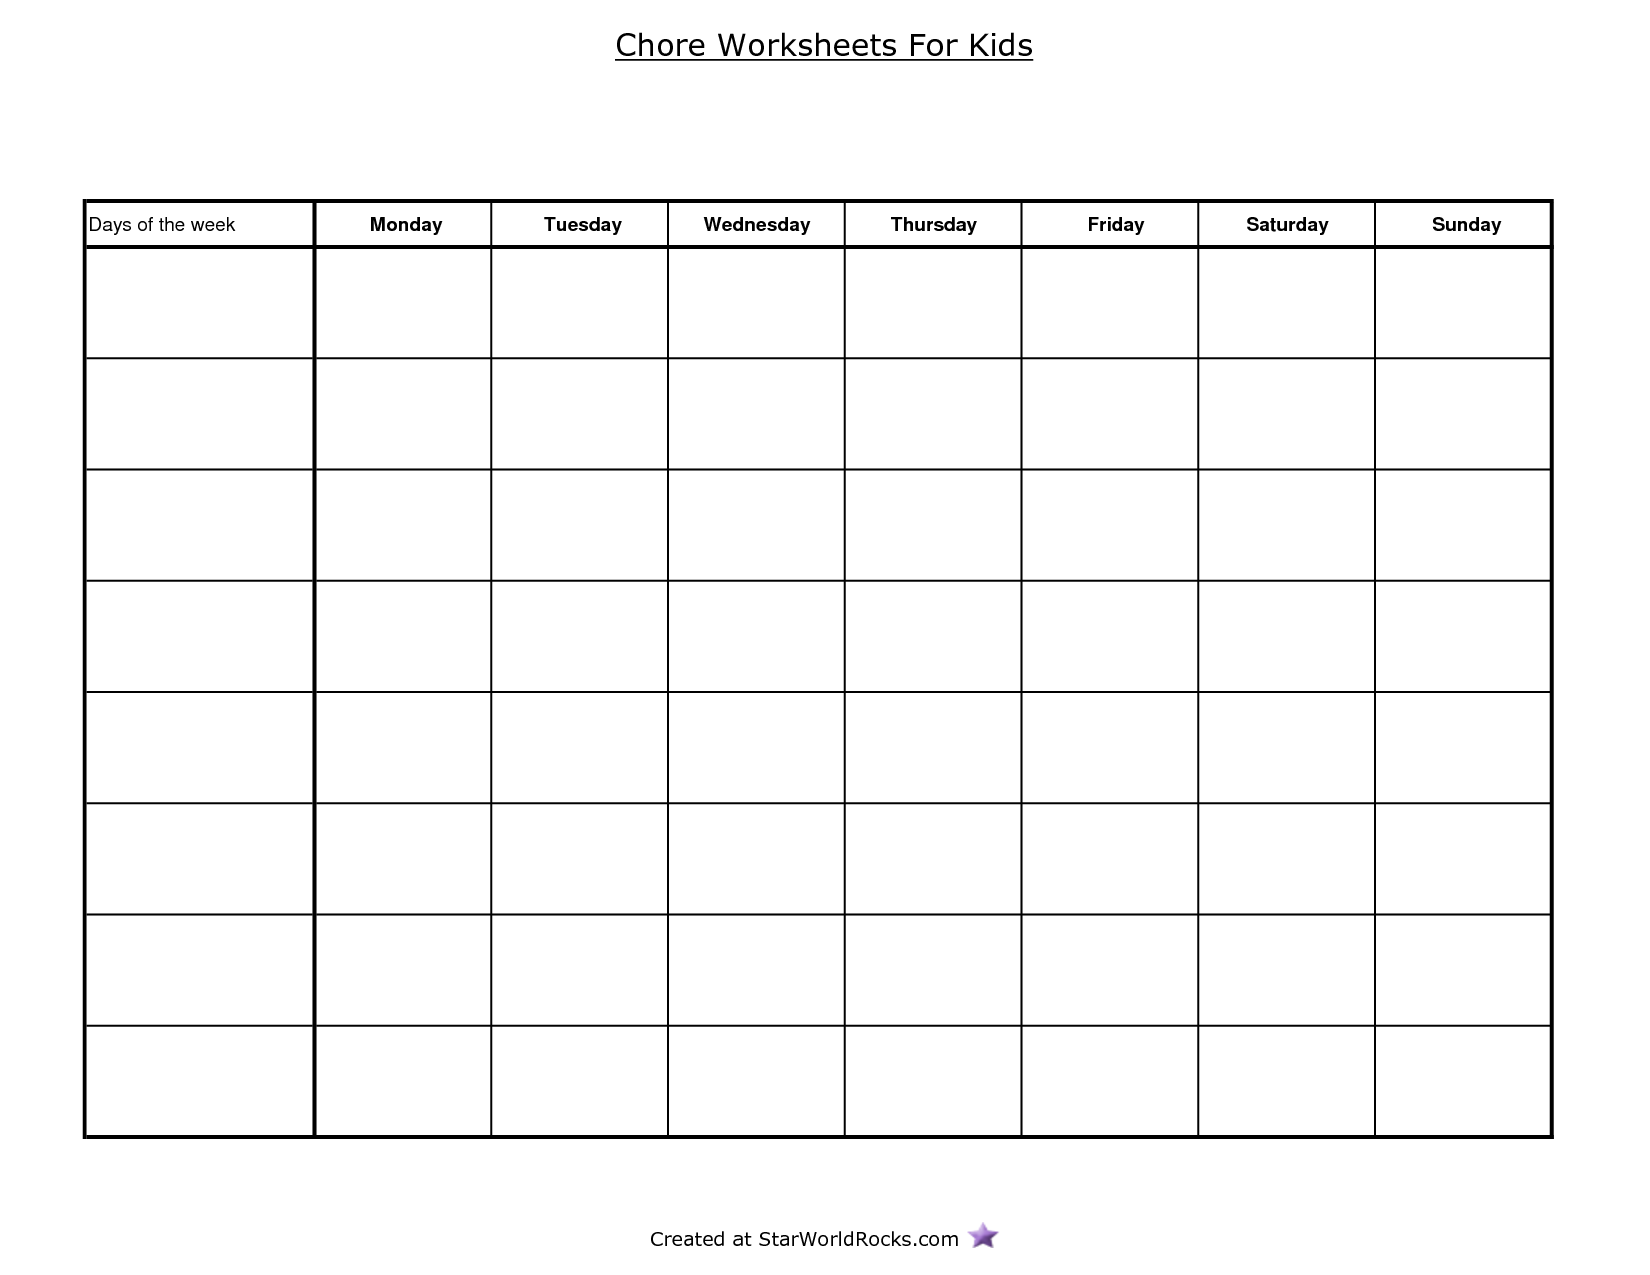 Tutorials free how to print a blank excel sheet with gridlines